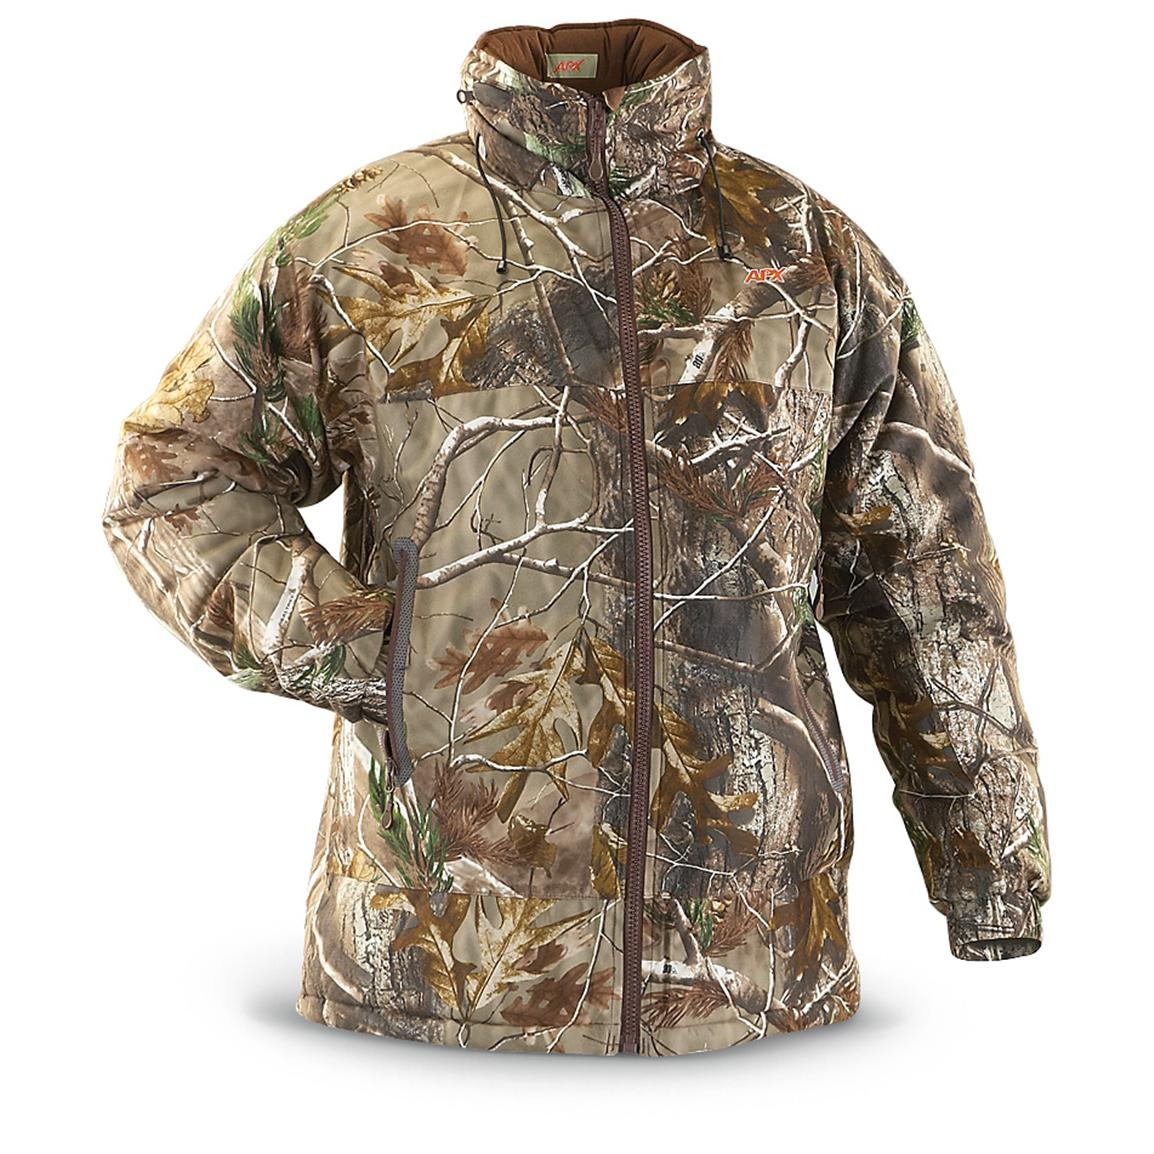 Russell Outdoors® L5 Whiteout Parka, Realtree® AP™; Water repellent; Wind resistant; Highly compressible